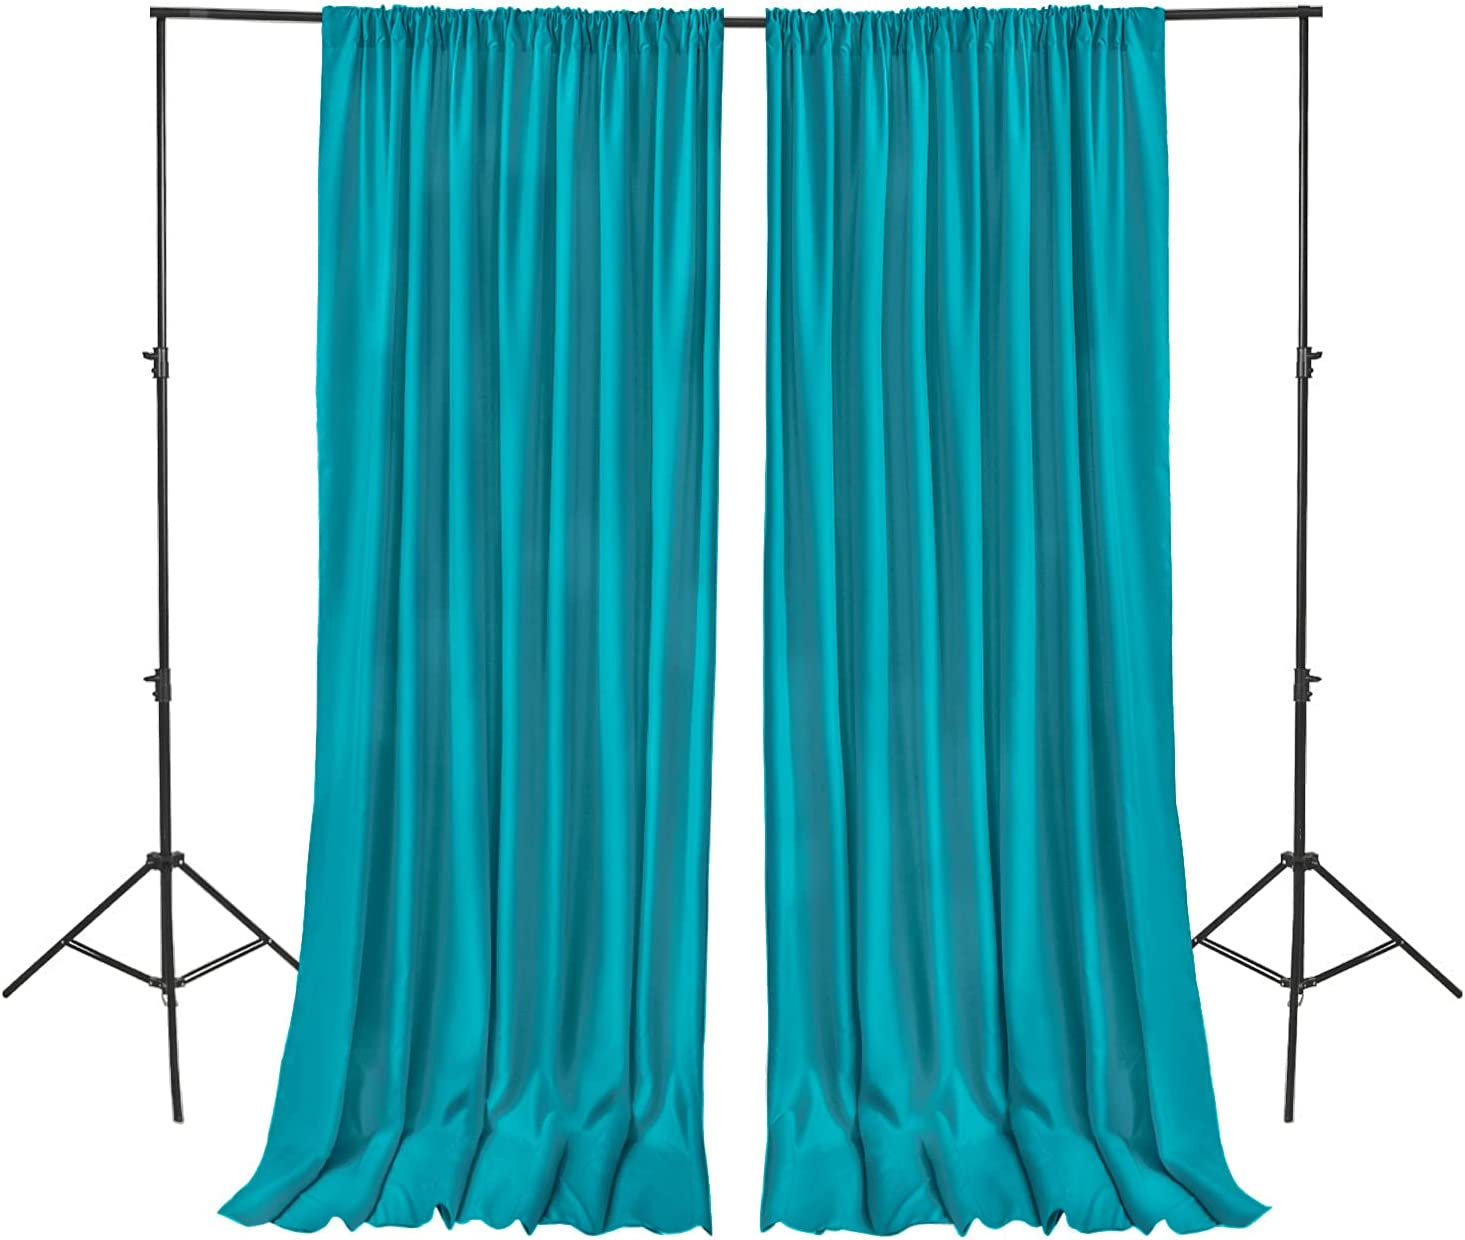 Hiasan お買い得 新商品 新型 Turquoise Backdrop Curtains Polyester for Parties Photog